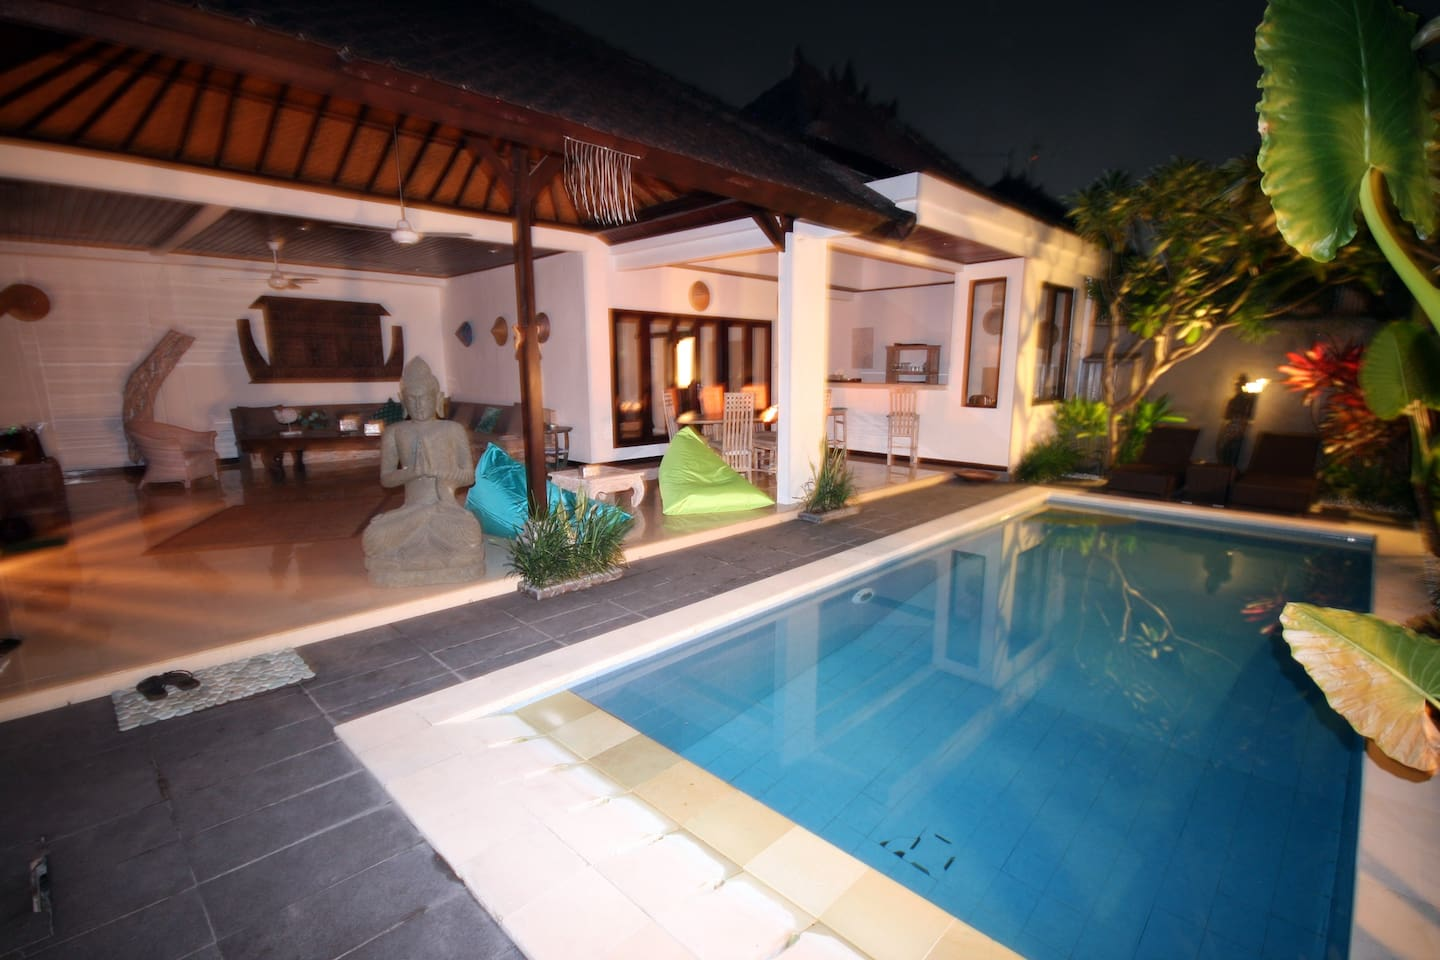 Villa Dewi Sri 2 Rooms + Pool